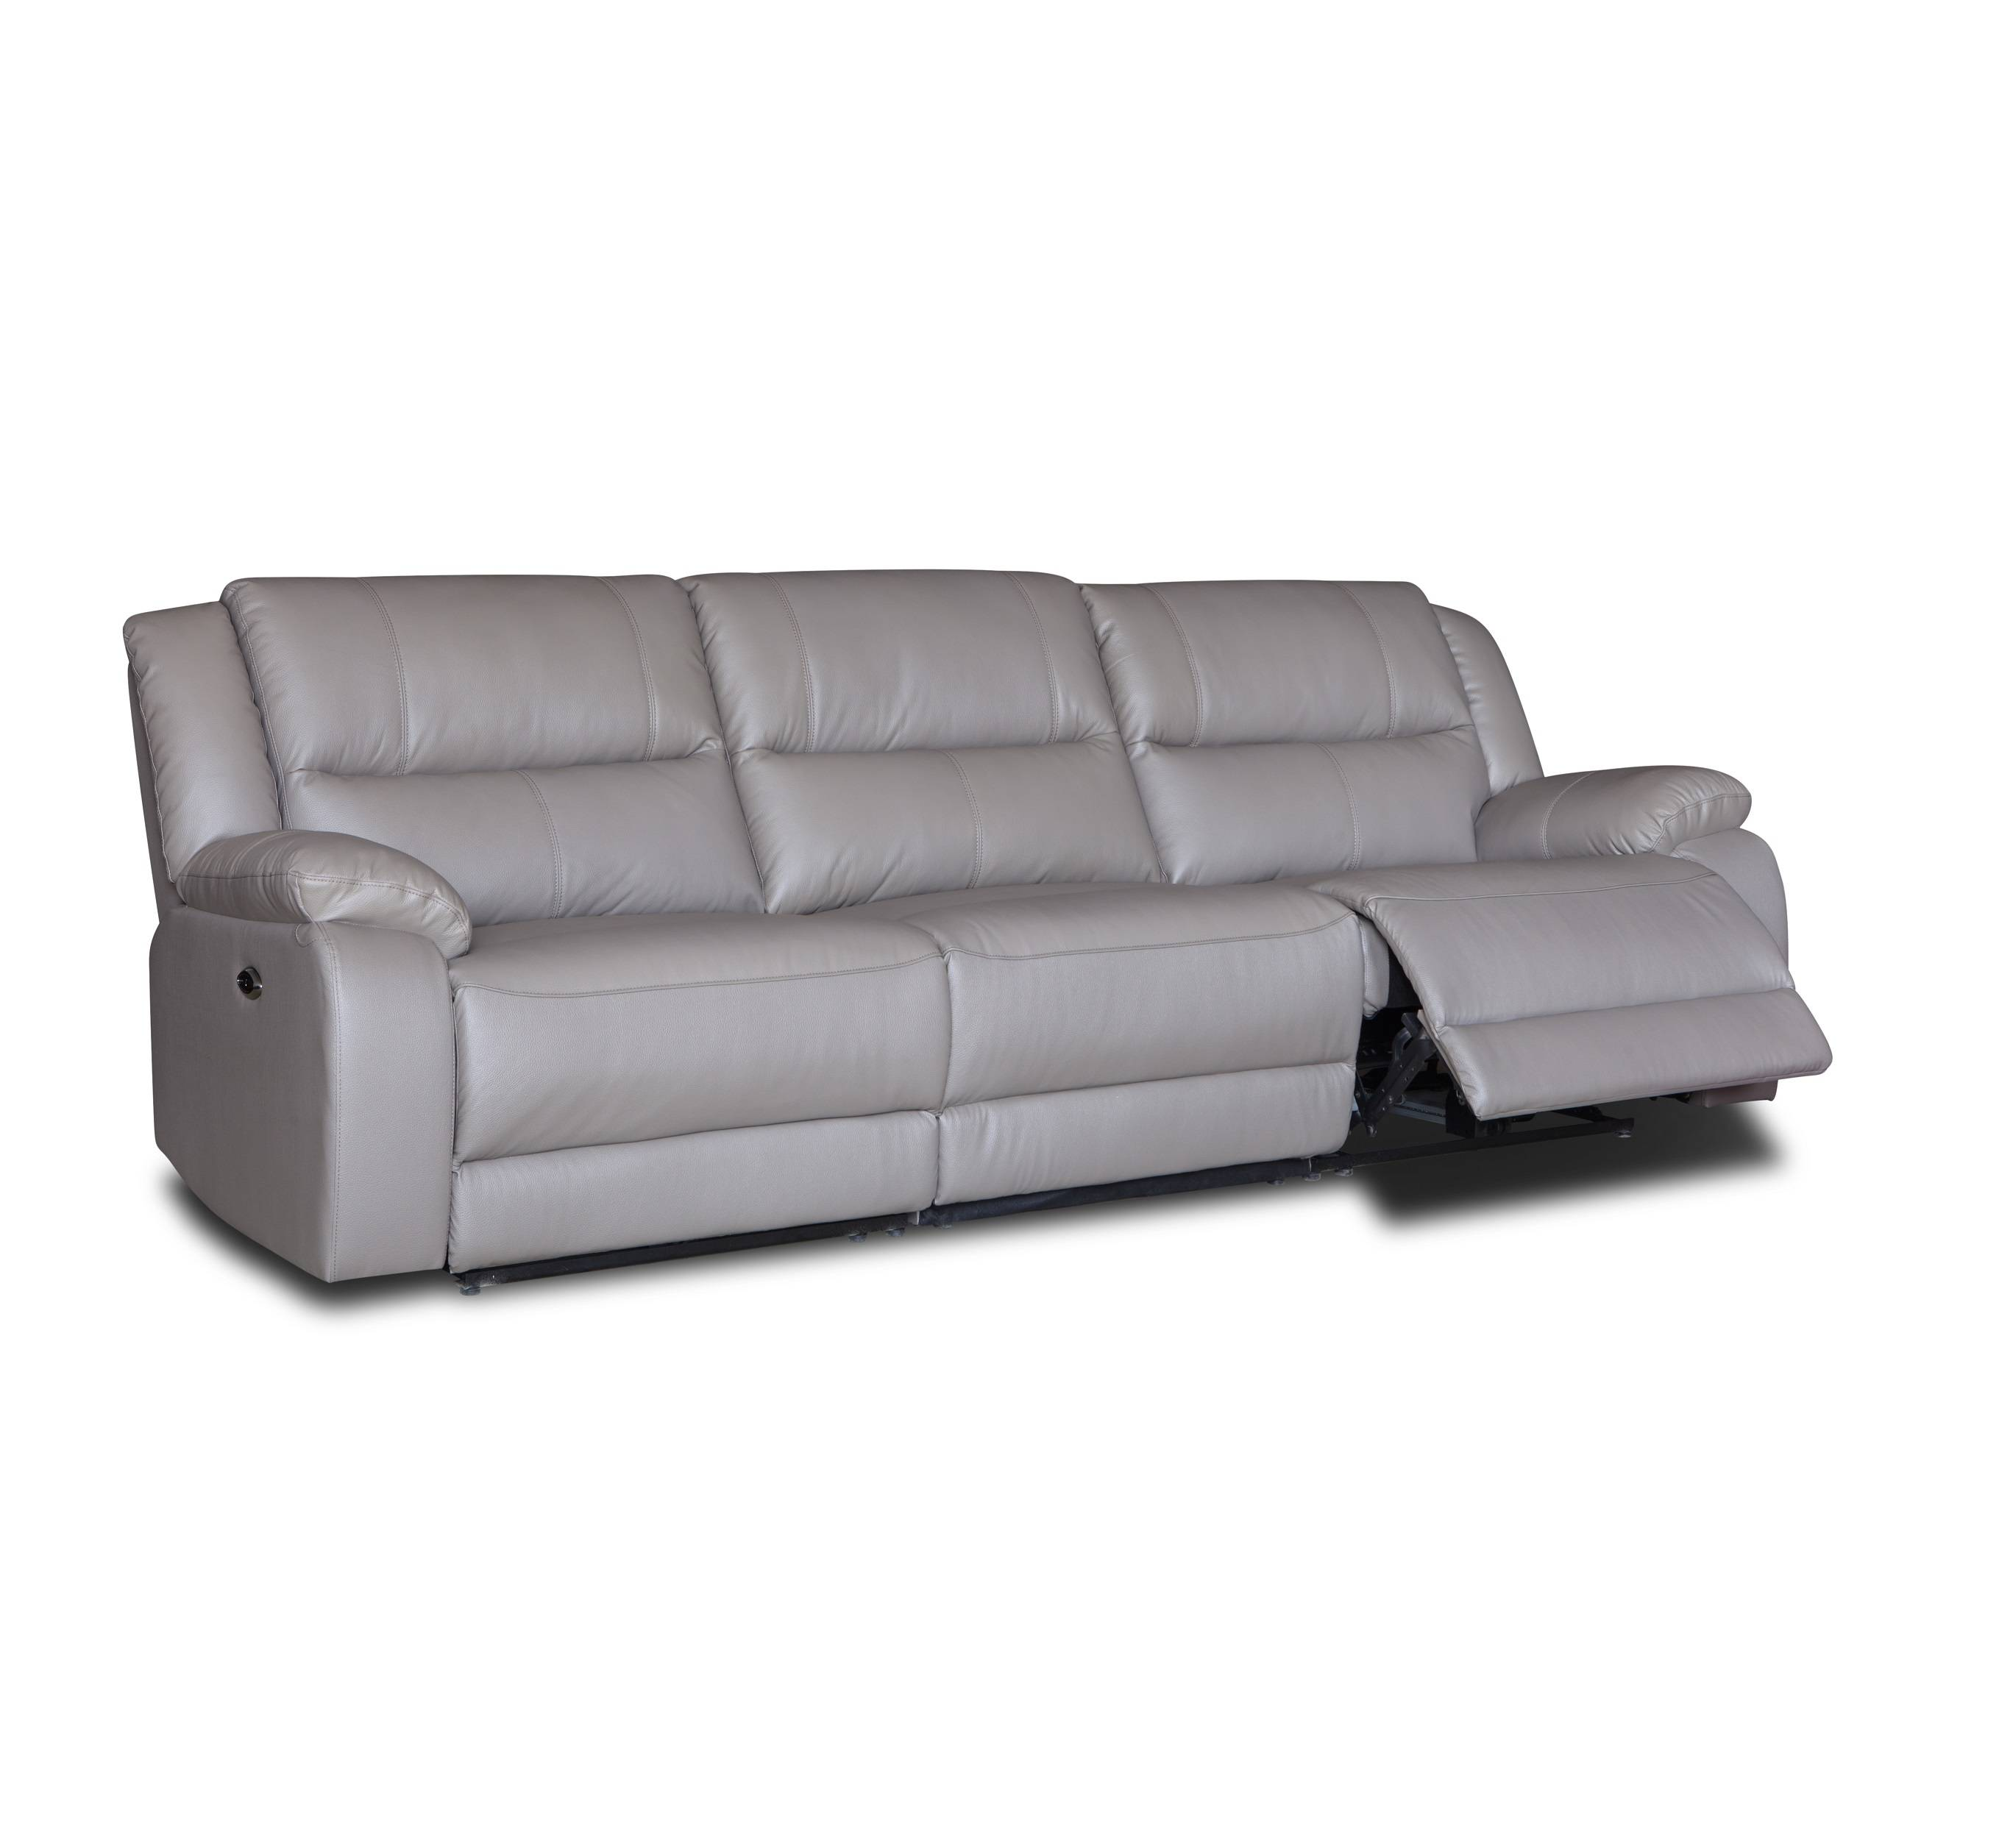 Royal home furniture 3 seater top grain leather recliner sofa set